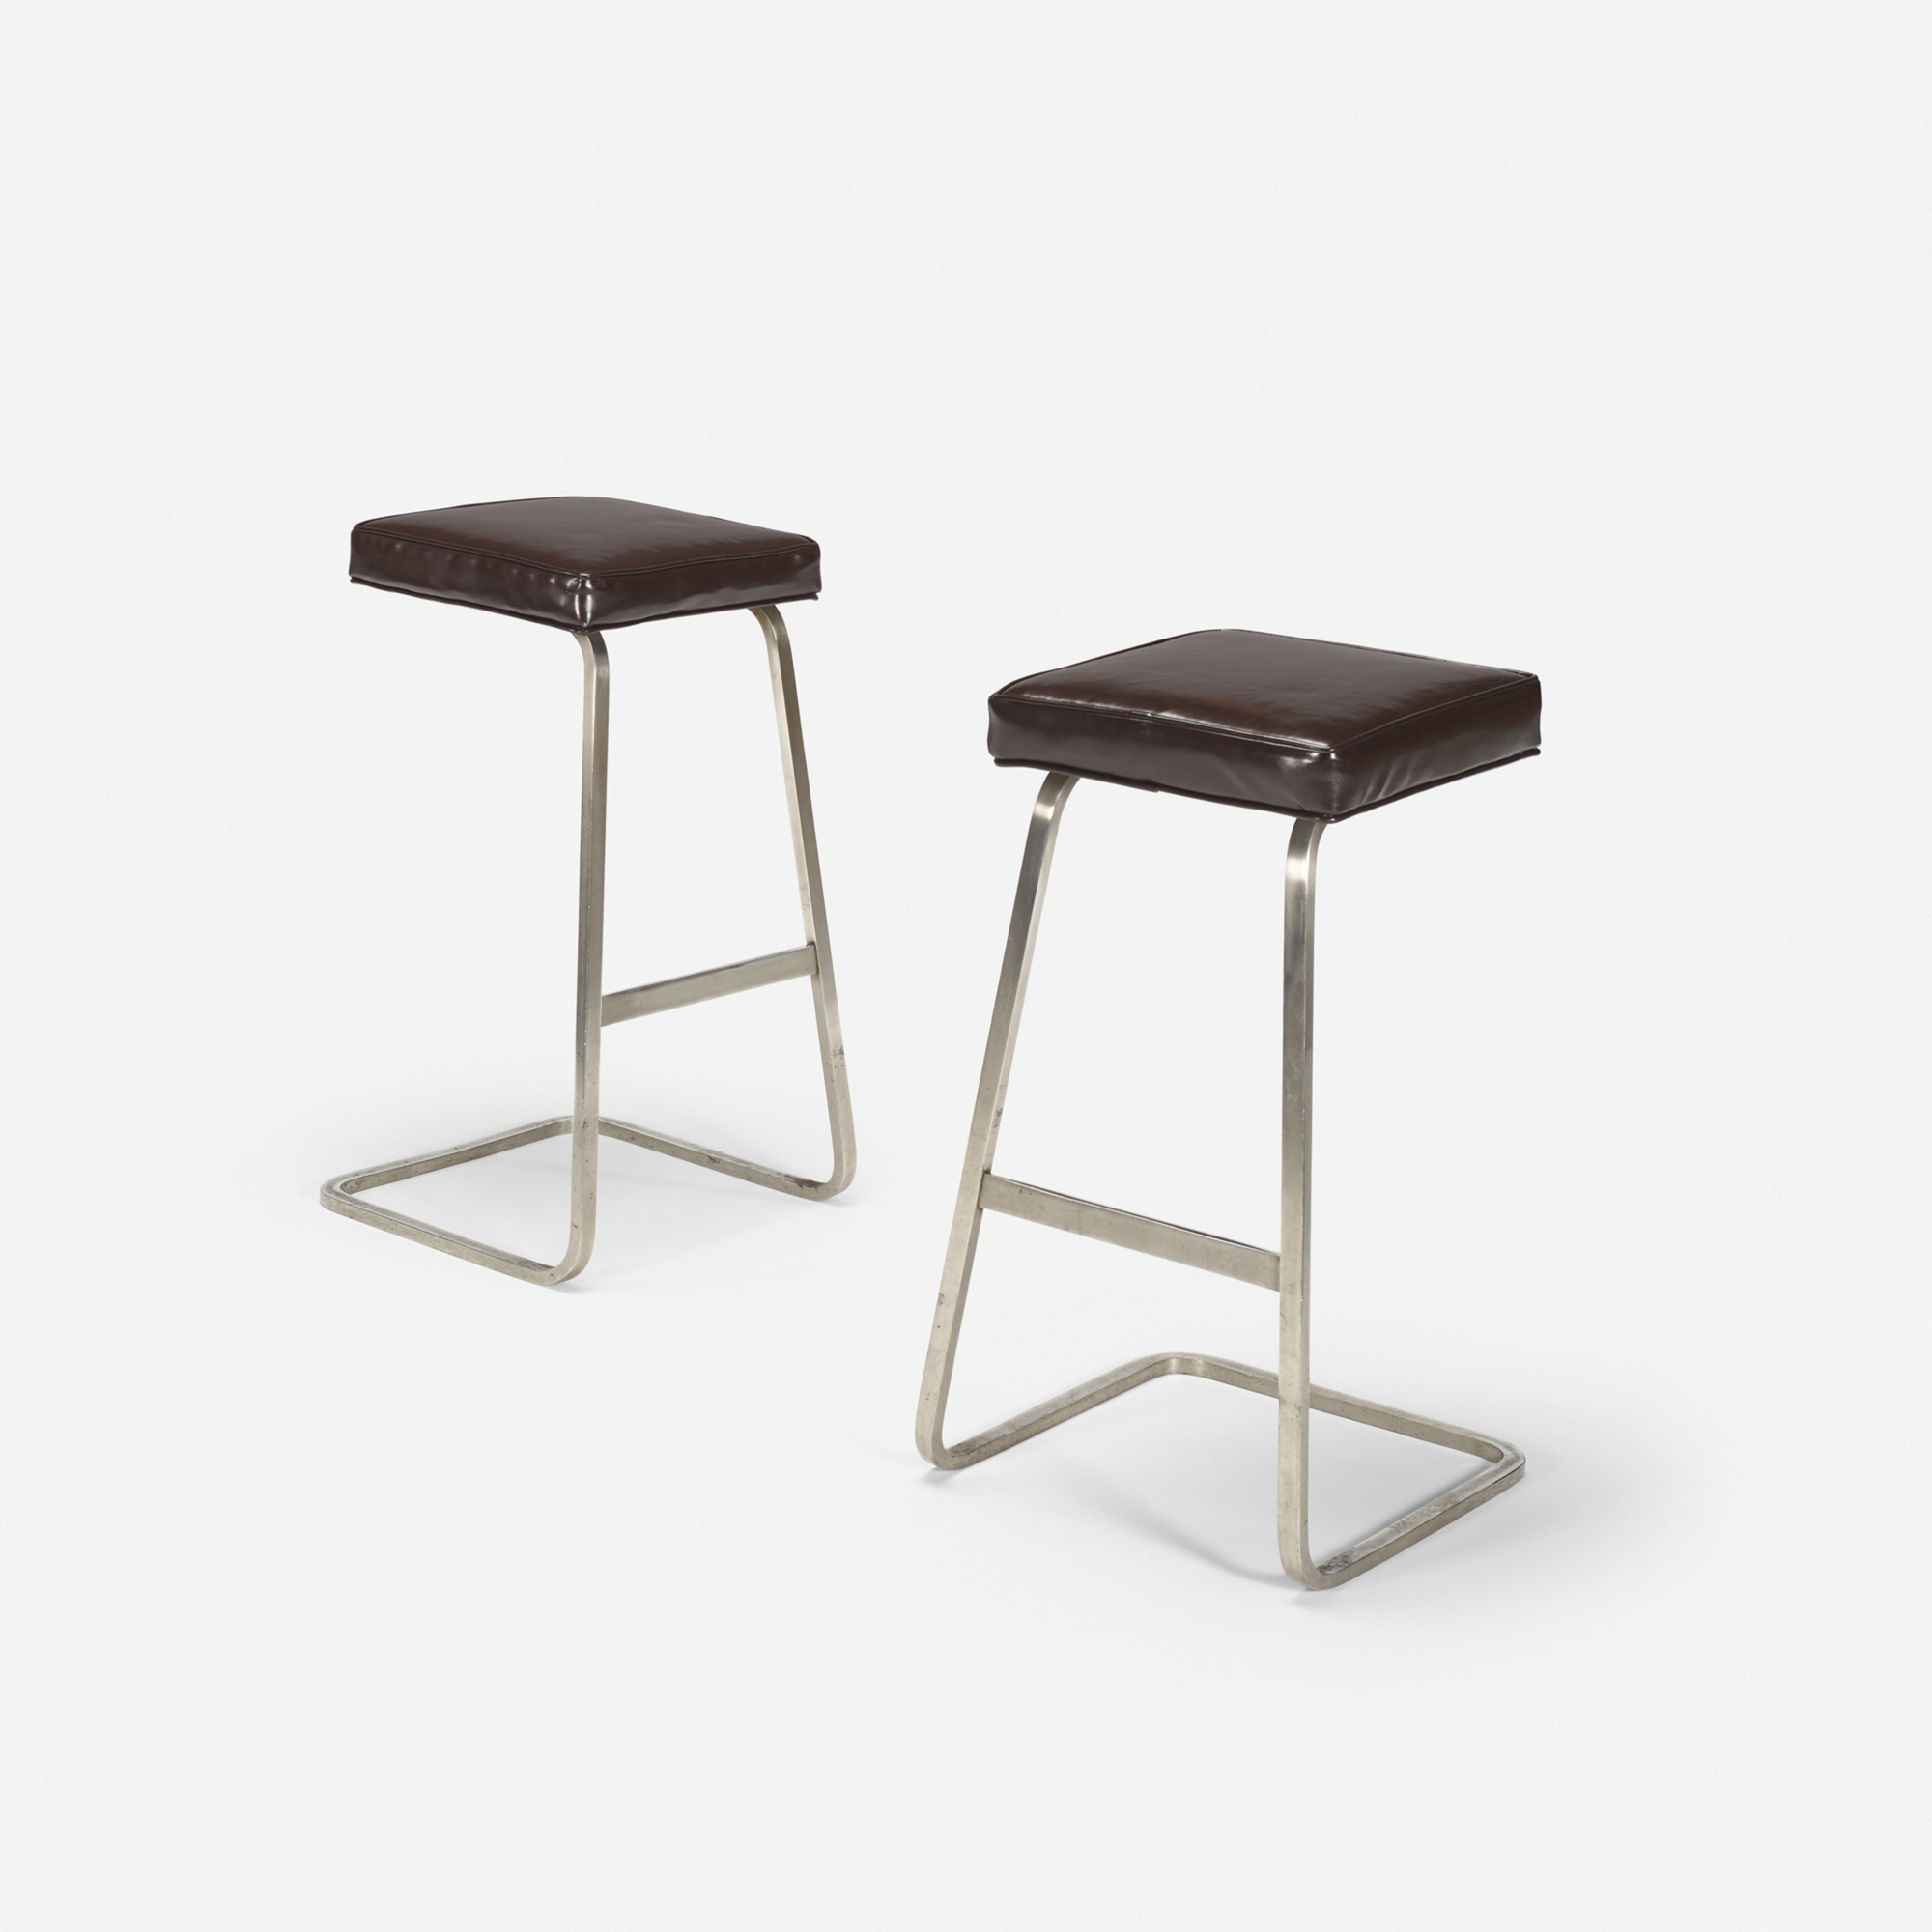 123: Ludwig Mies van der Rohe with Philip Johnson / Four Seasons bar stools from the Grill Room, pair (1 of 1)